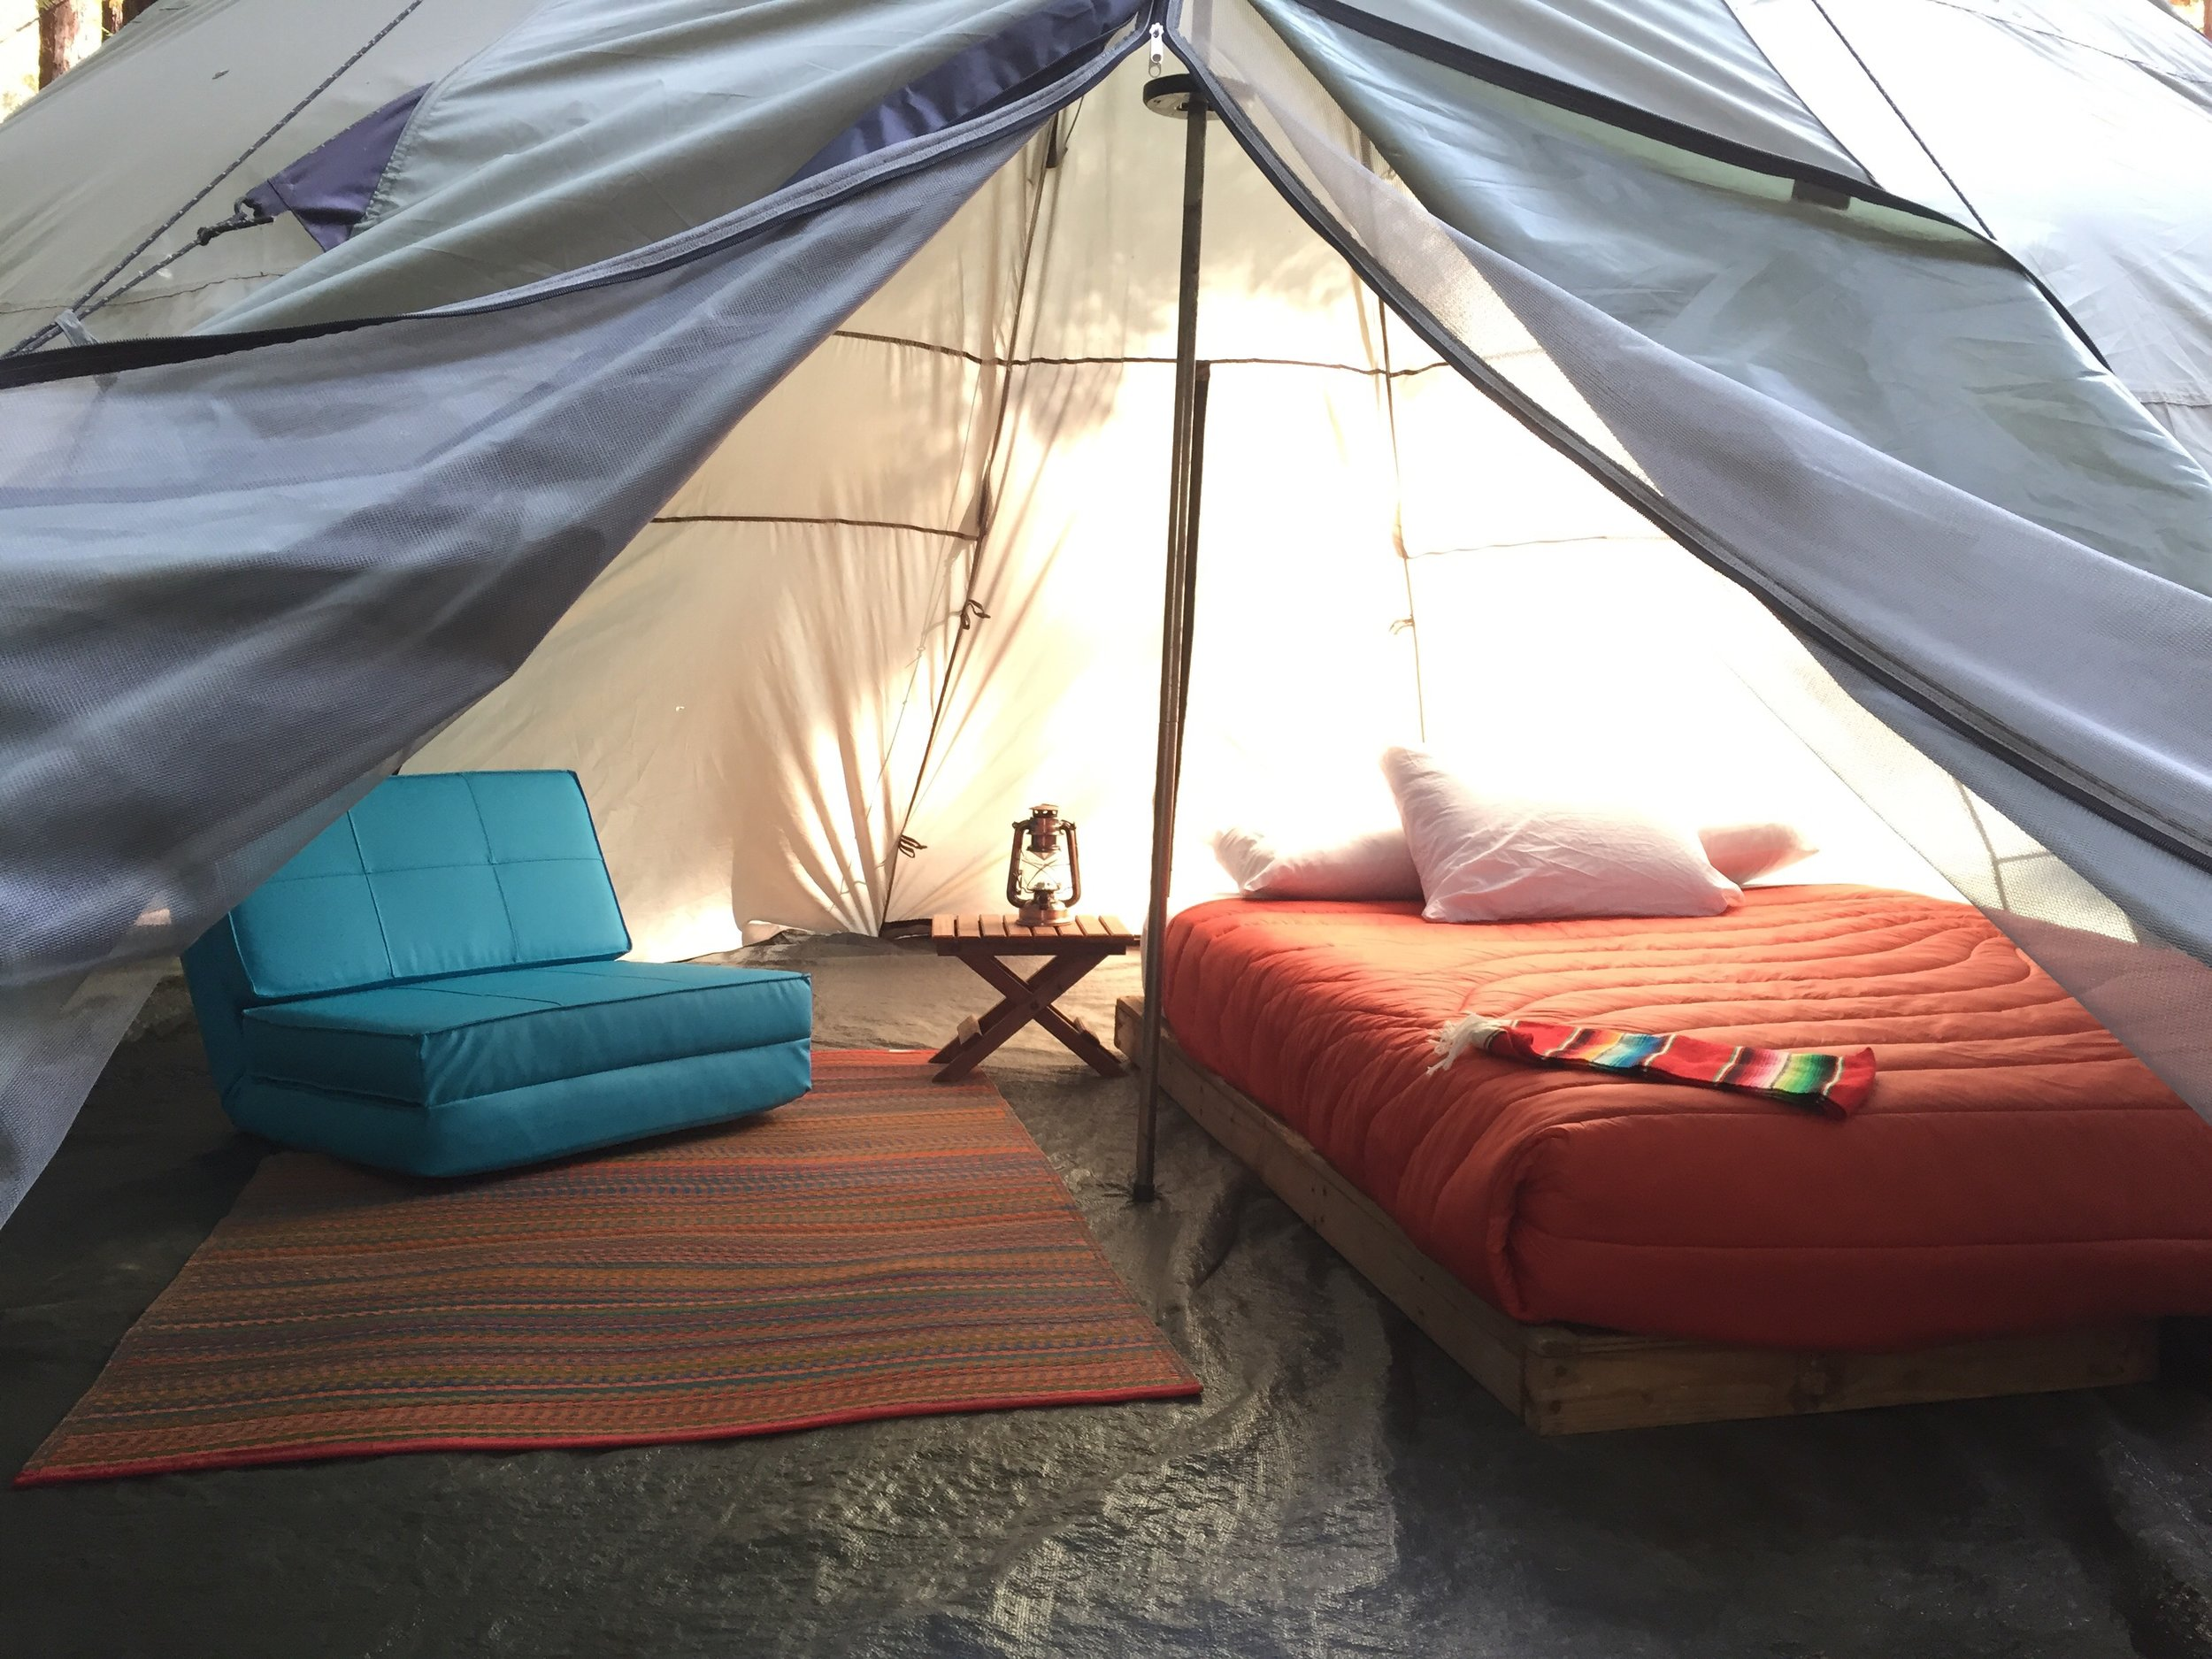 Deluxe Teepee Tents - Ideal for couples, deluxe teepee tents include a queen-size mattress and a roomy interior. Deluxe teepee tents come with linens and blankets.Weekend rate: $175 per person for 2